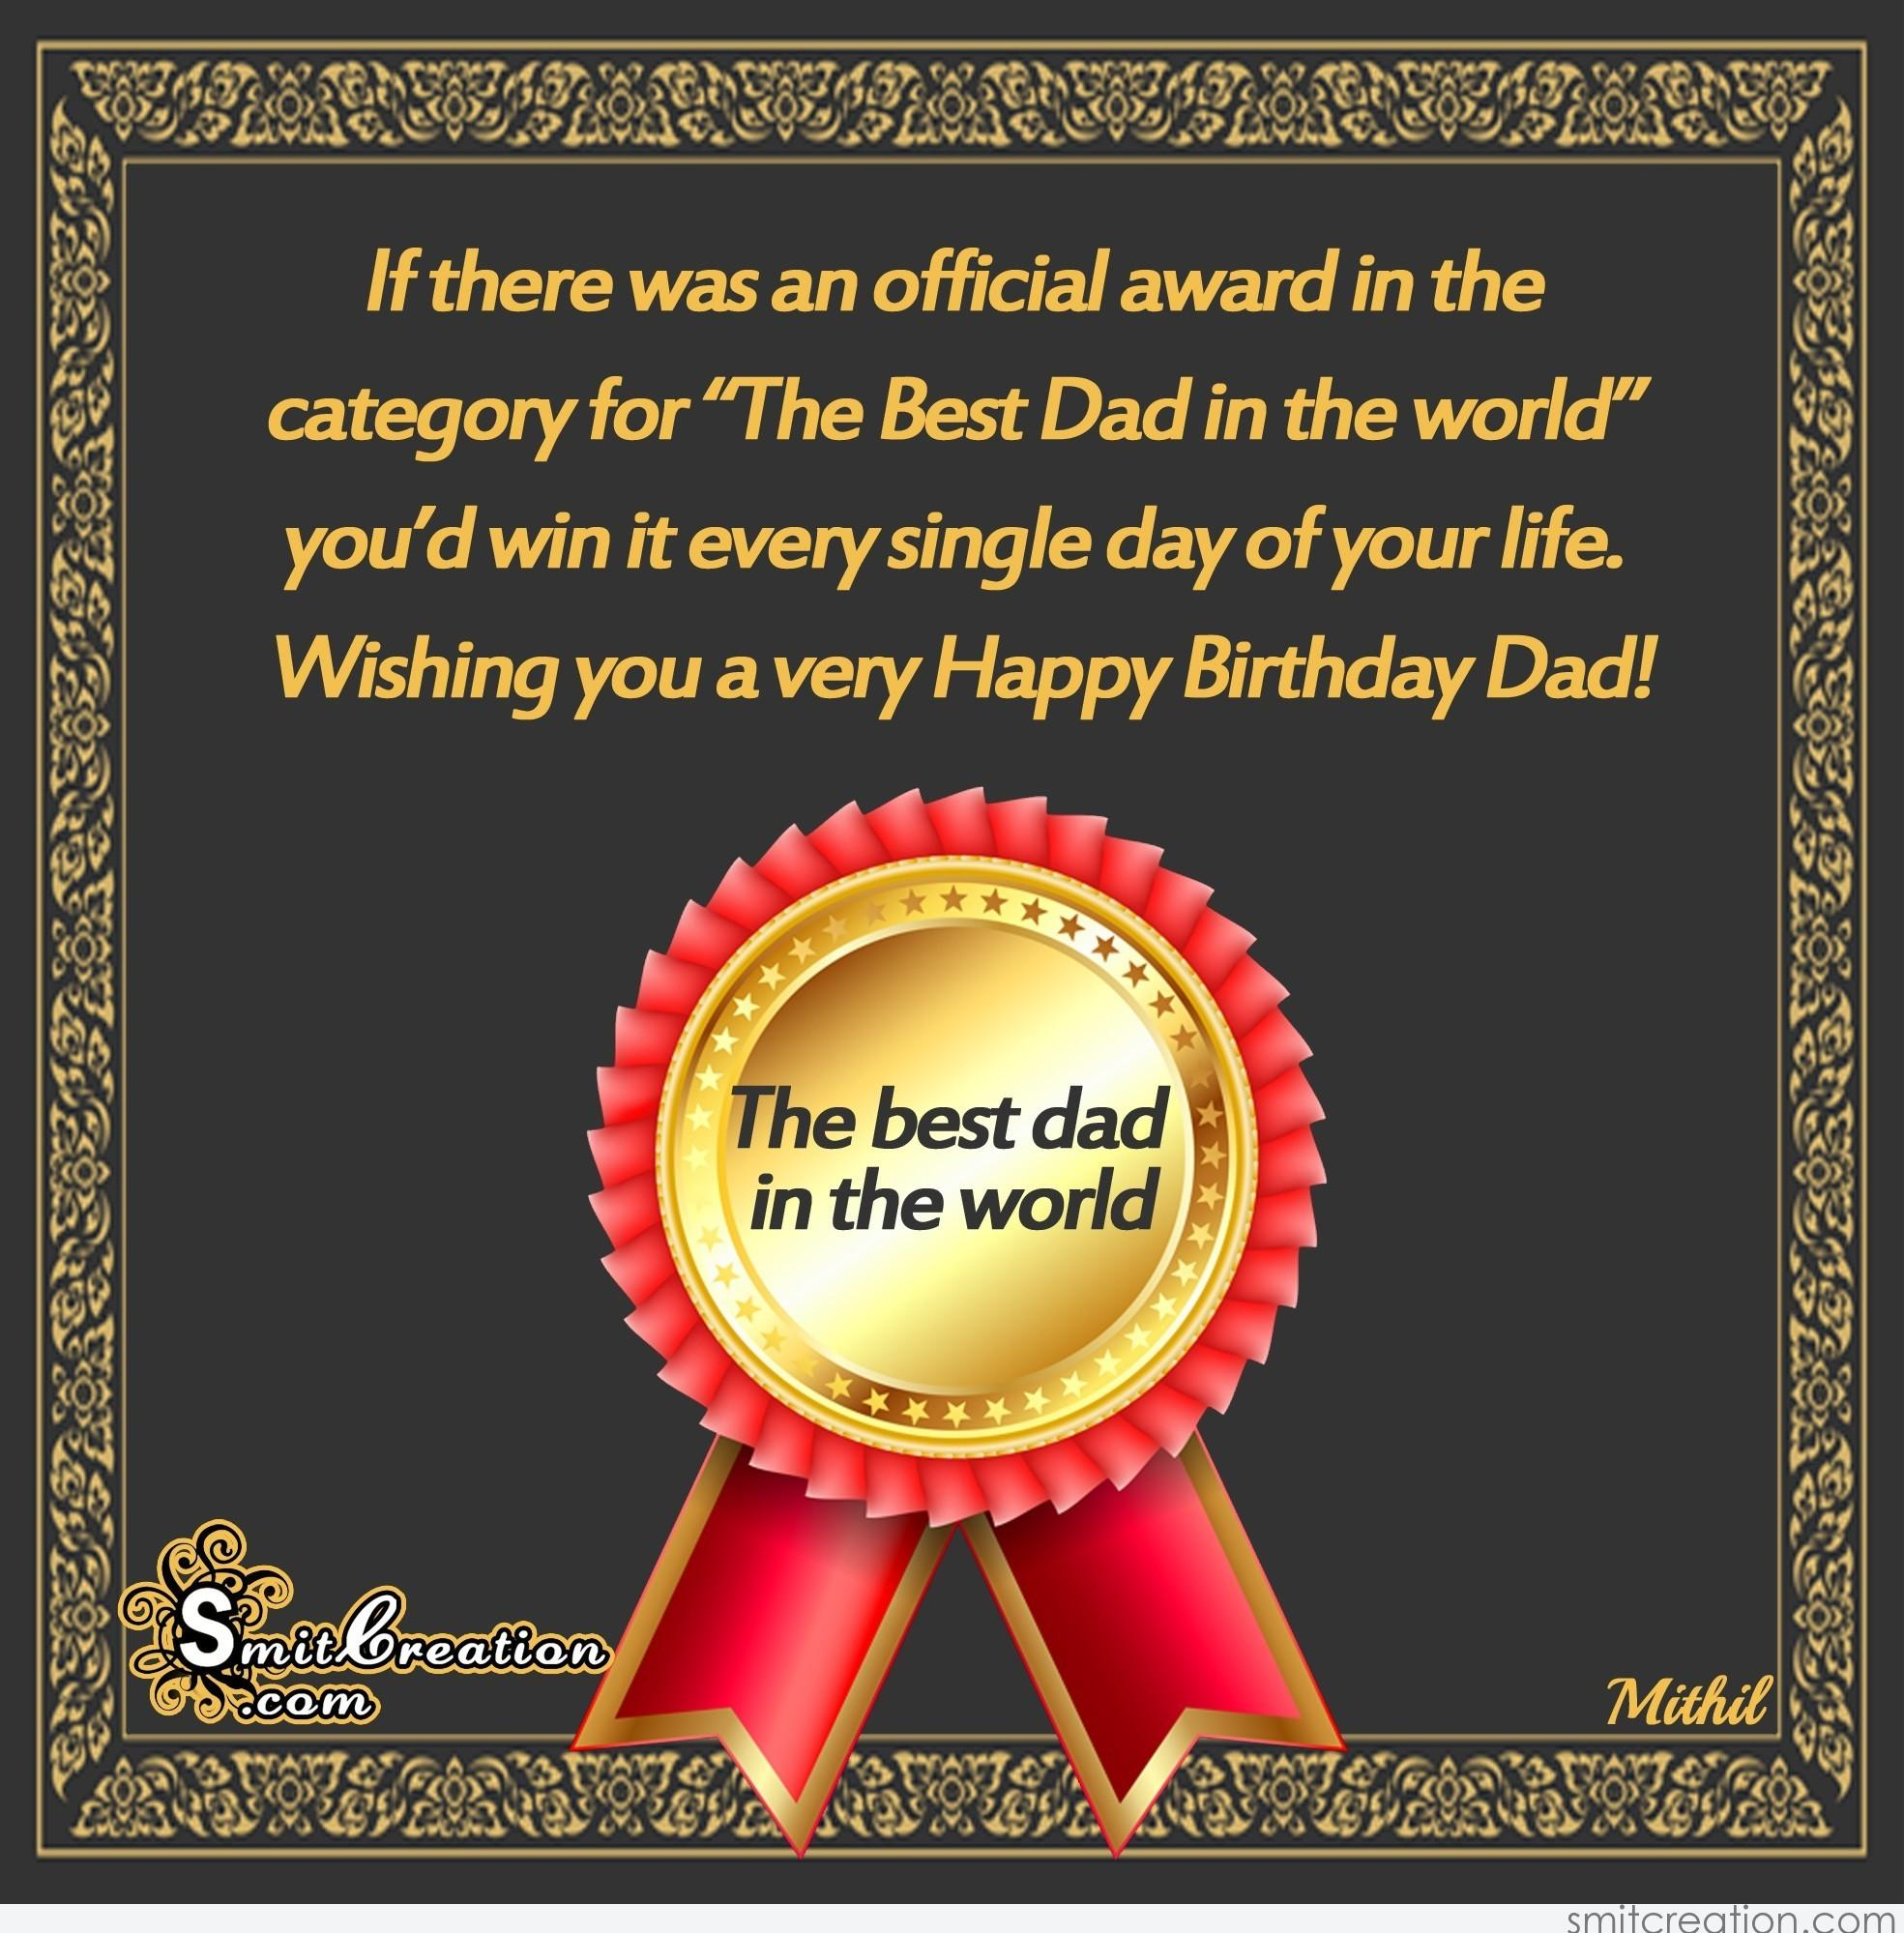 Happy Birthday Dad The Best Dad In The World Smitcreation Com